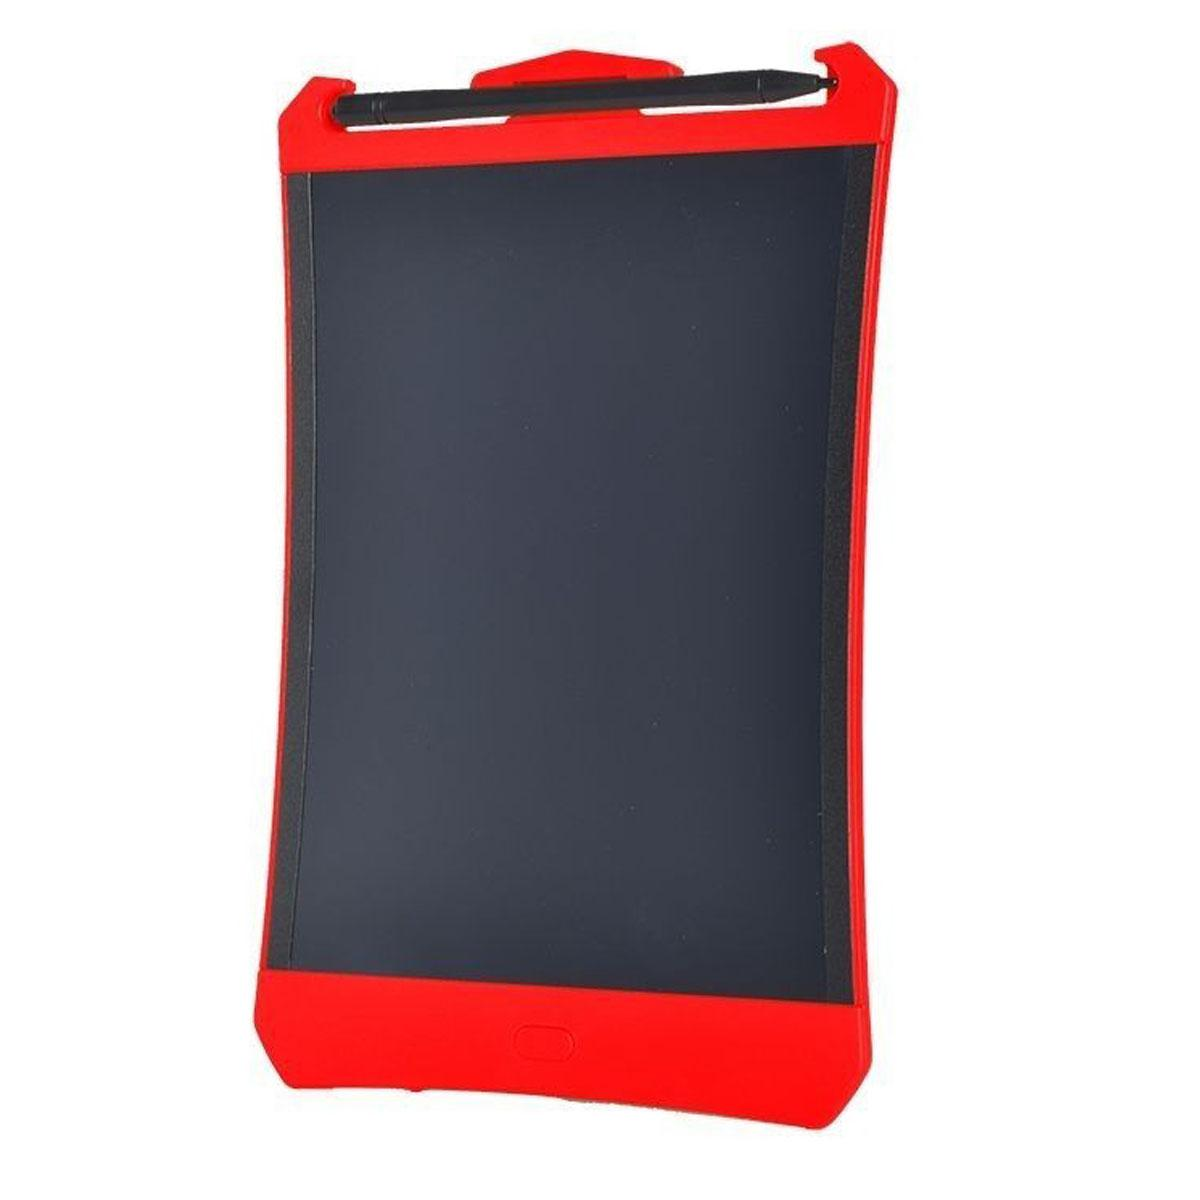 Mini Digital Slate Leotec Sketchboard Thick Eight Network 8.5 With Stroke Thick LCD Screen Stylus Pen Included Magnet T